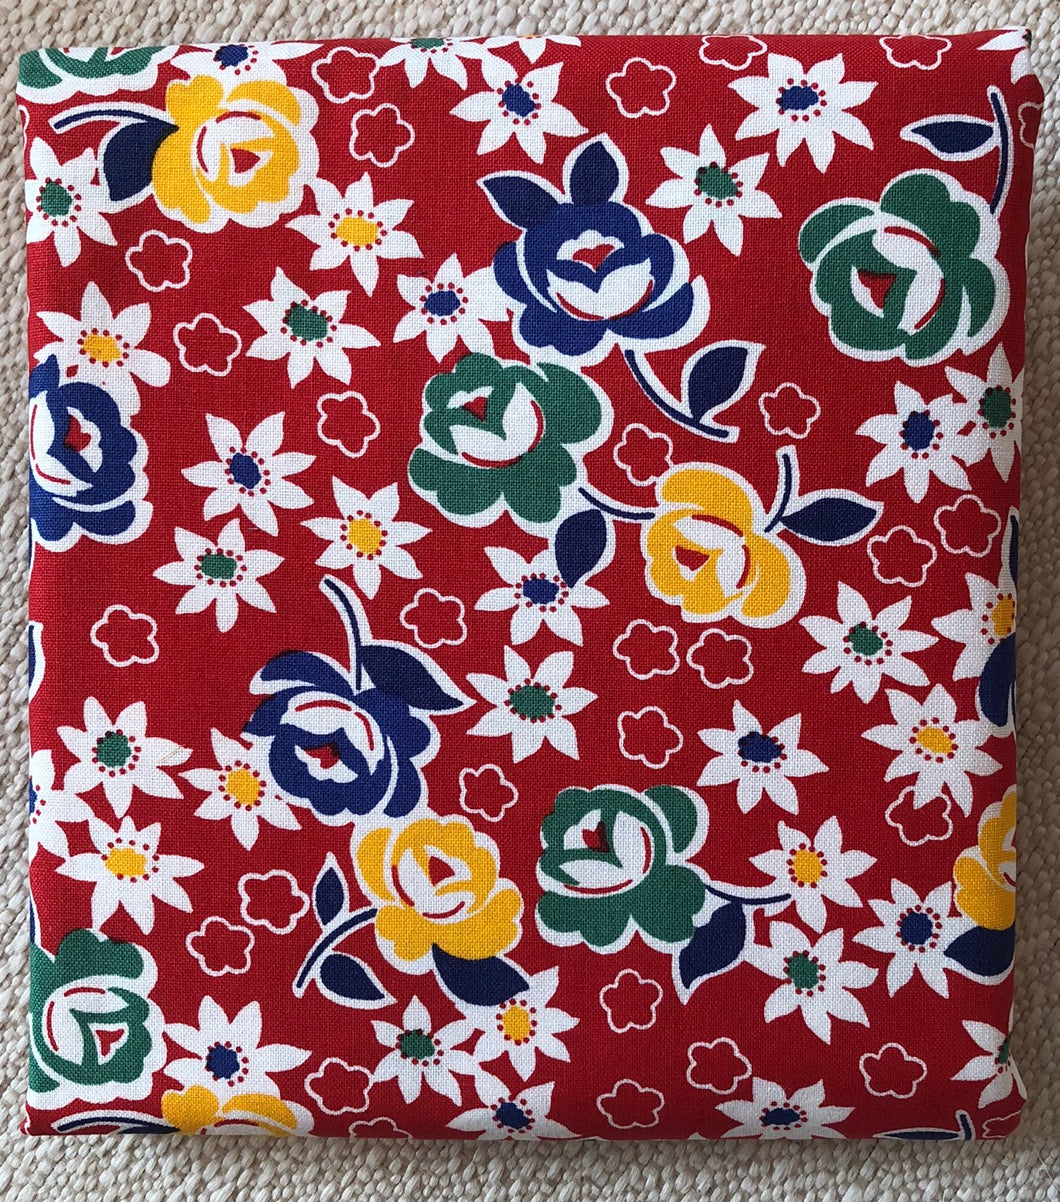 Reproduction Collection Red With Flowers ~ Fabric By The Yard